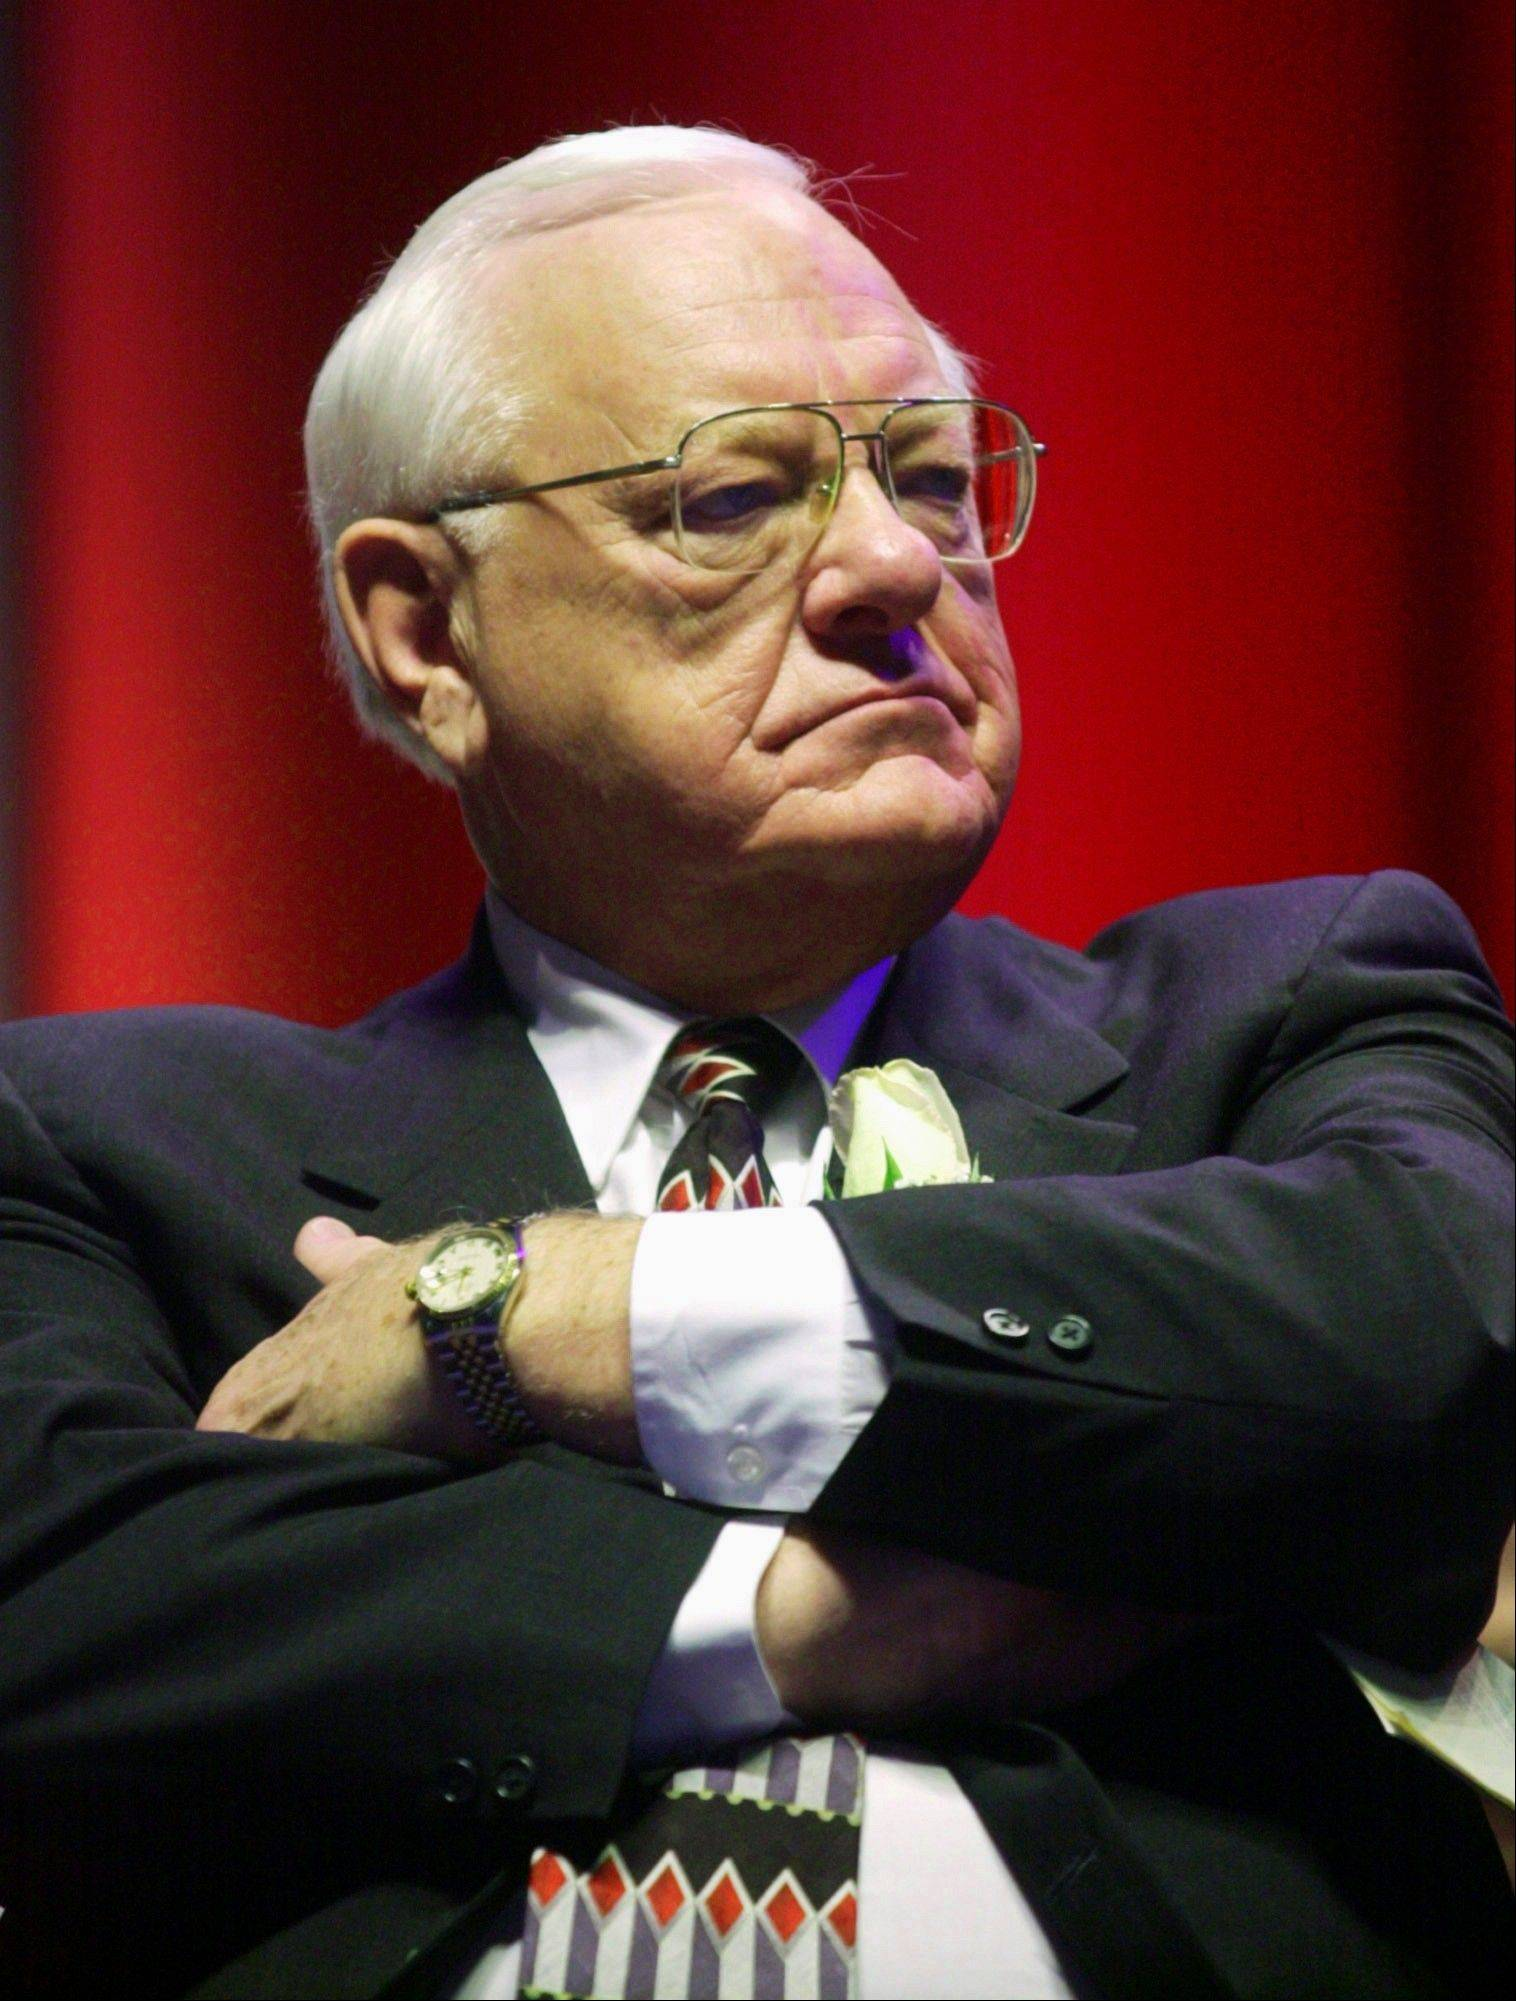 George Ryan was convicted of racketeering and fraud charges in 2006.